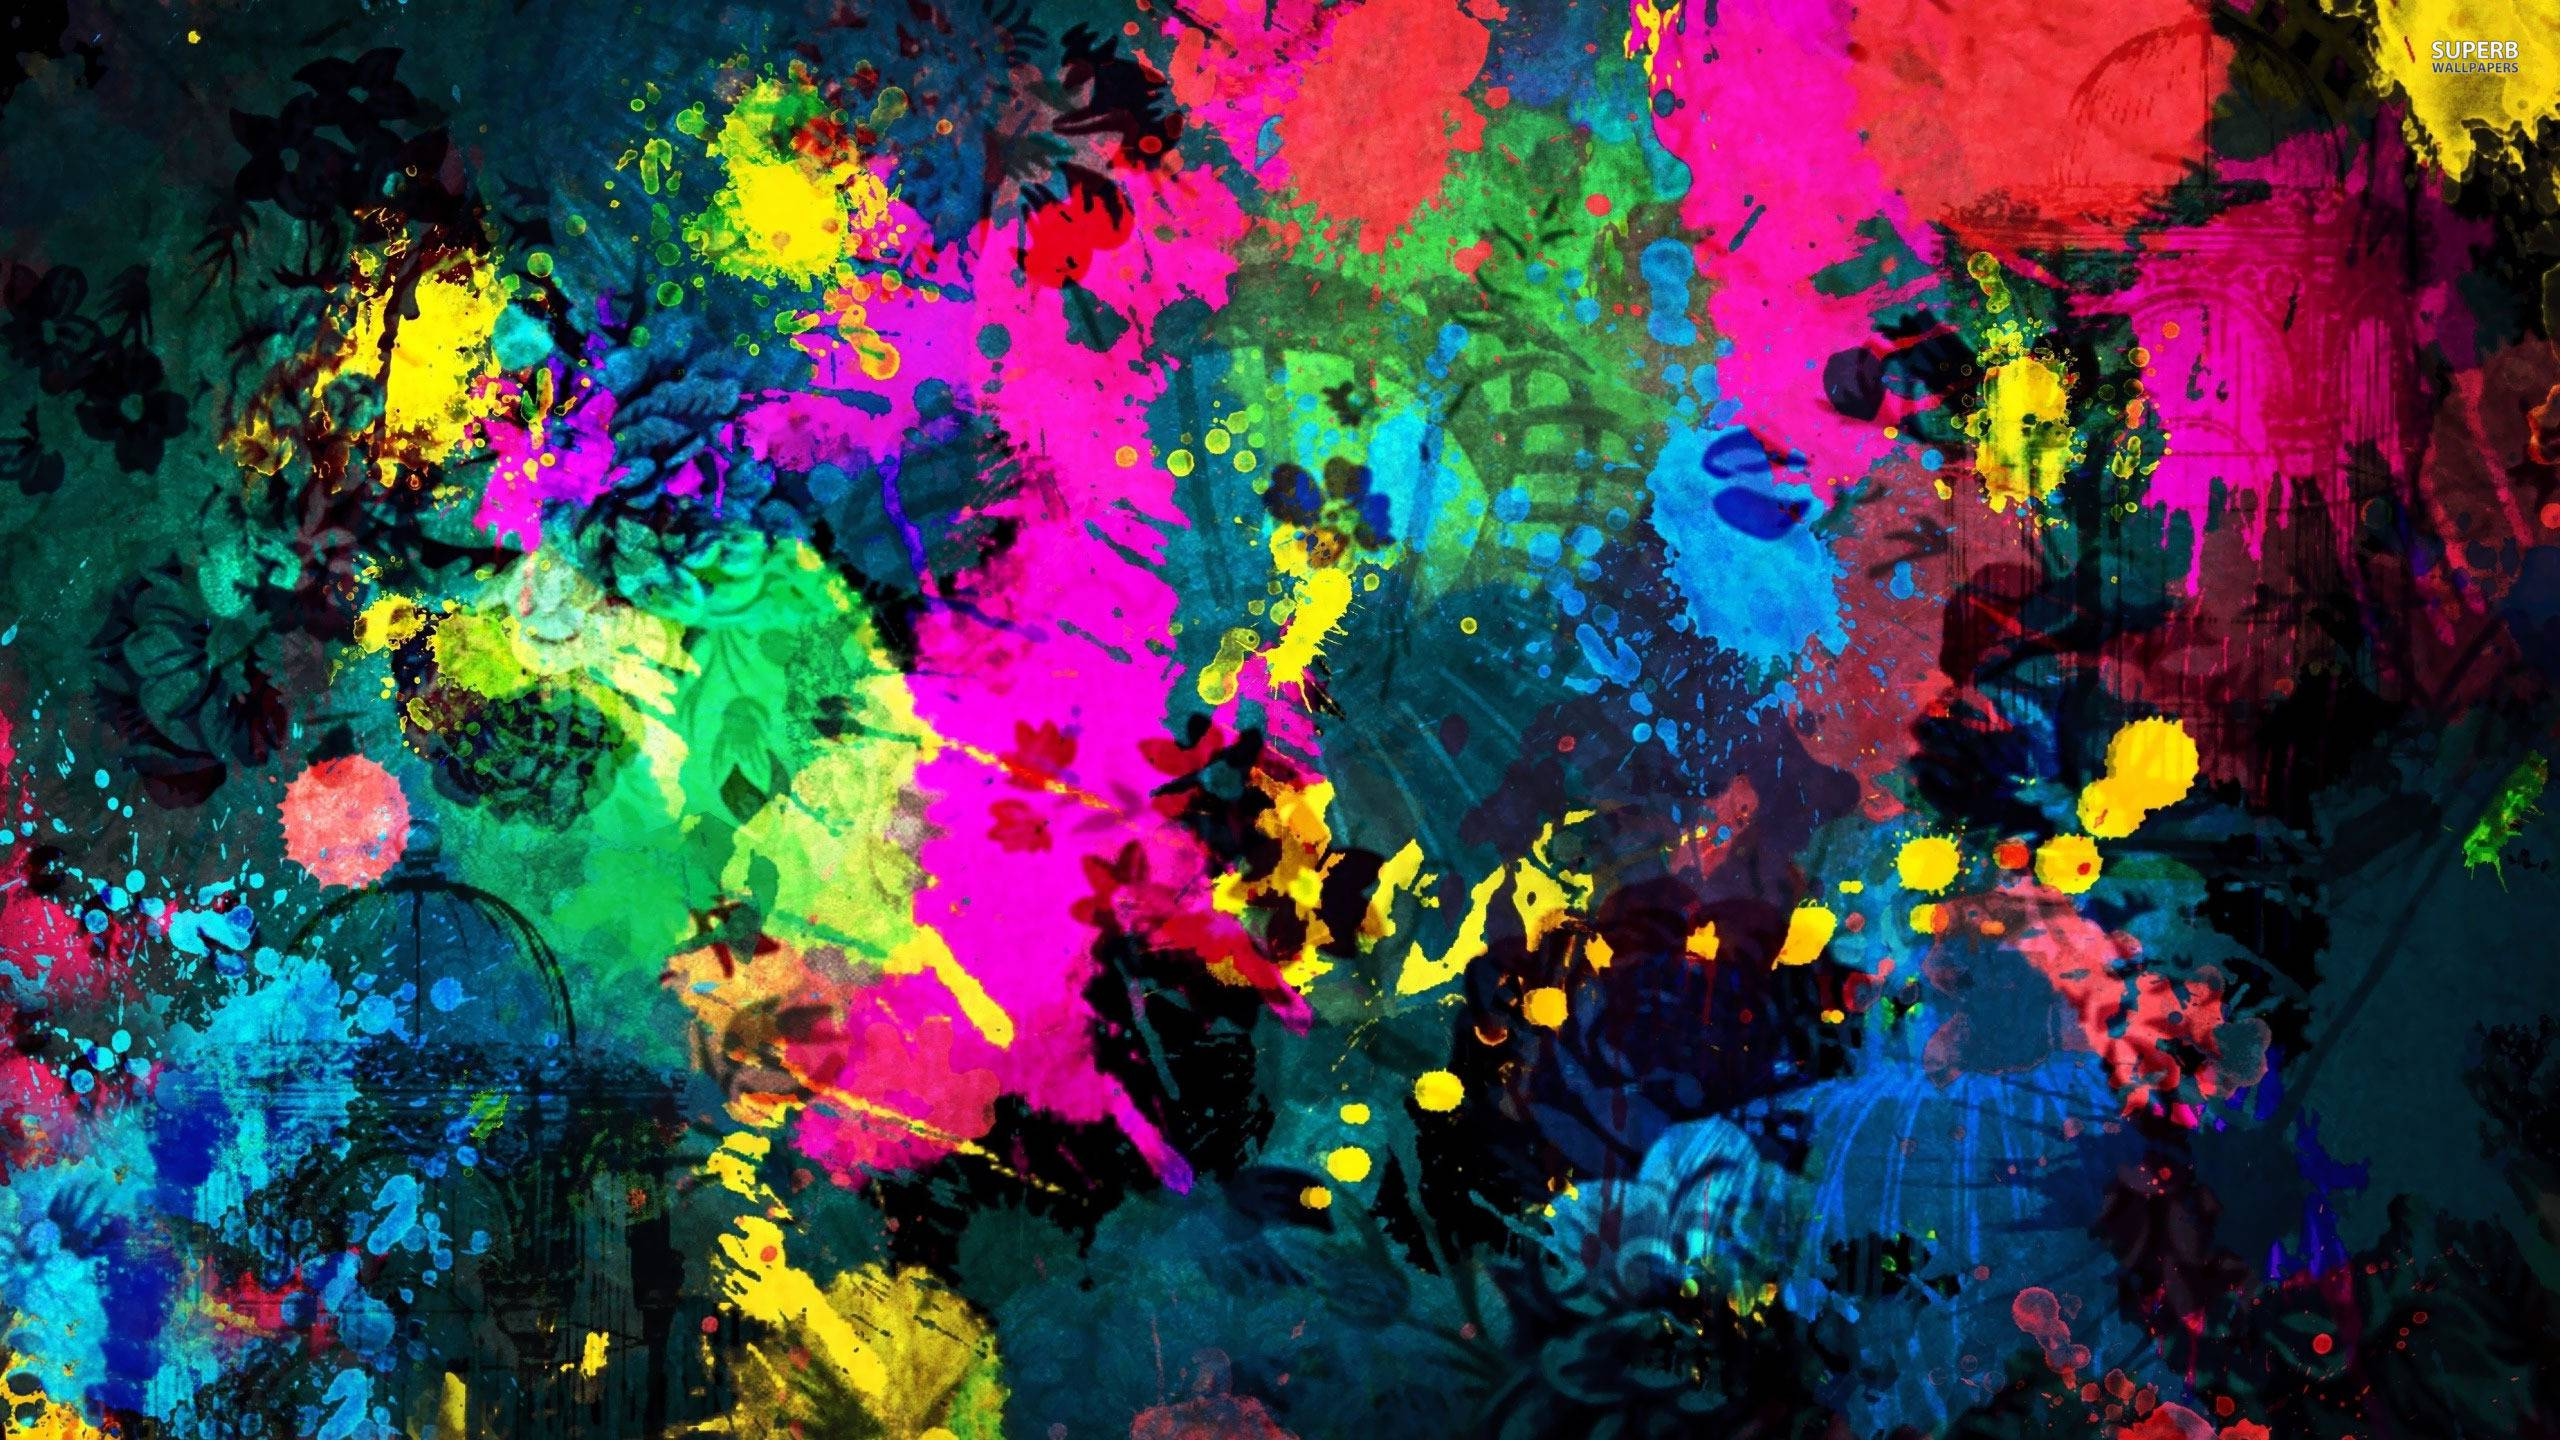 Paint Drop HD Wallpapers - Top Free